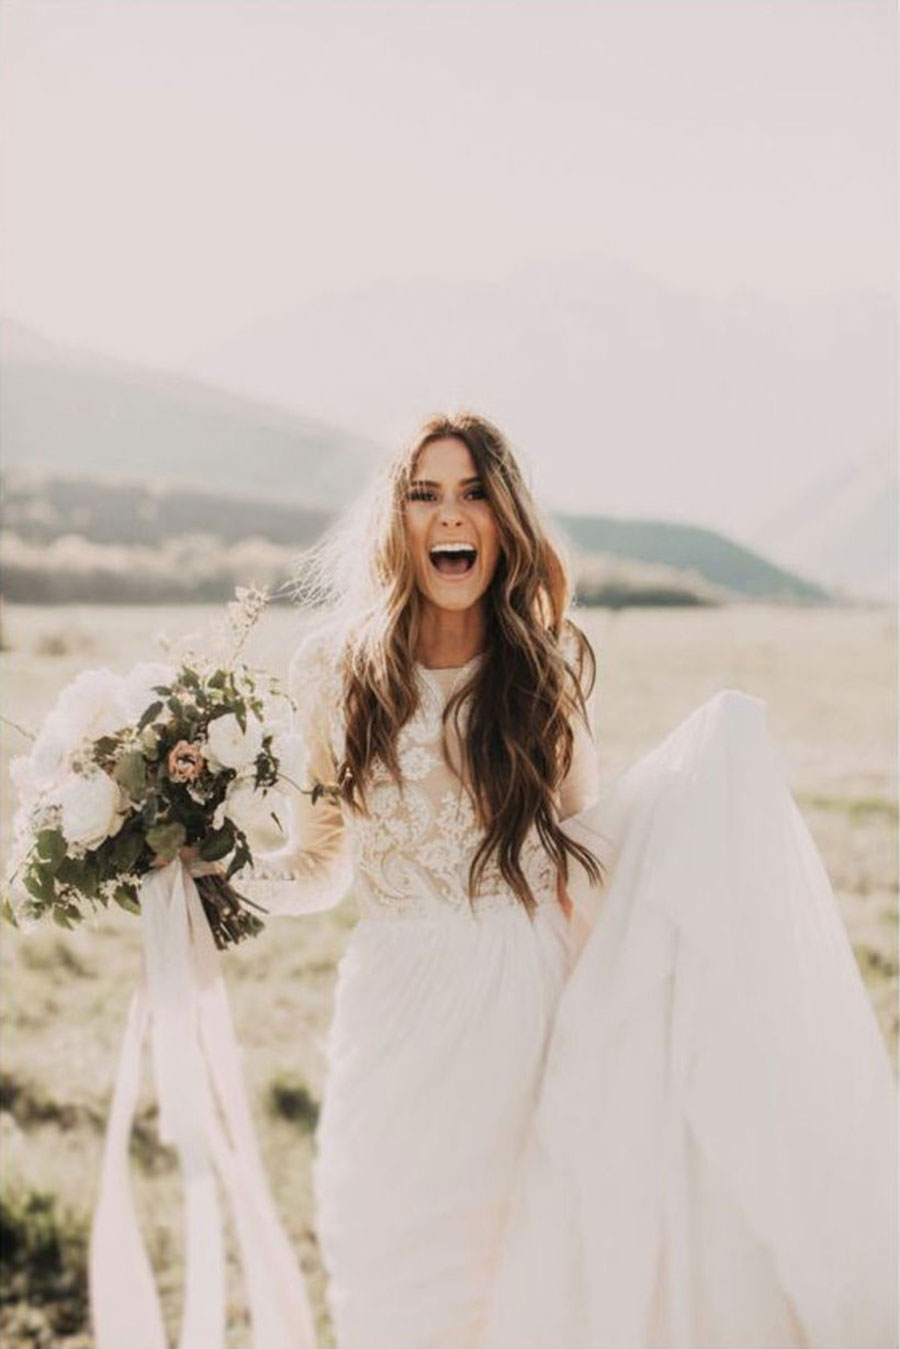 Giveaway for a free wedding dress vancouver wedding dresses giveaway for a free wedding dress vancouver wedding dresses gowns from isabelles bridal north vancouver junglespirit Choice Image